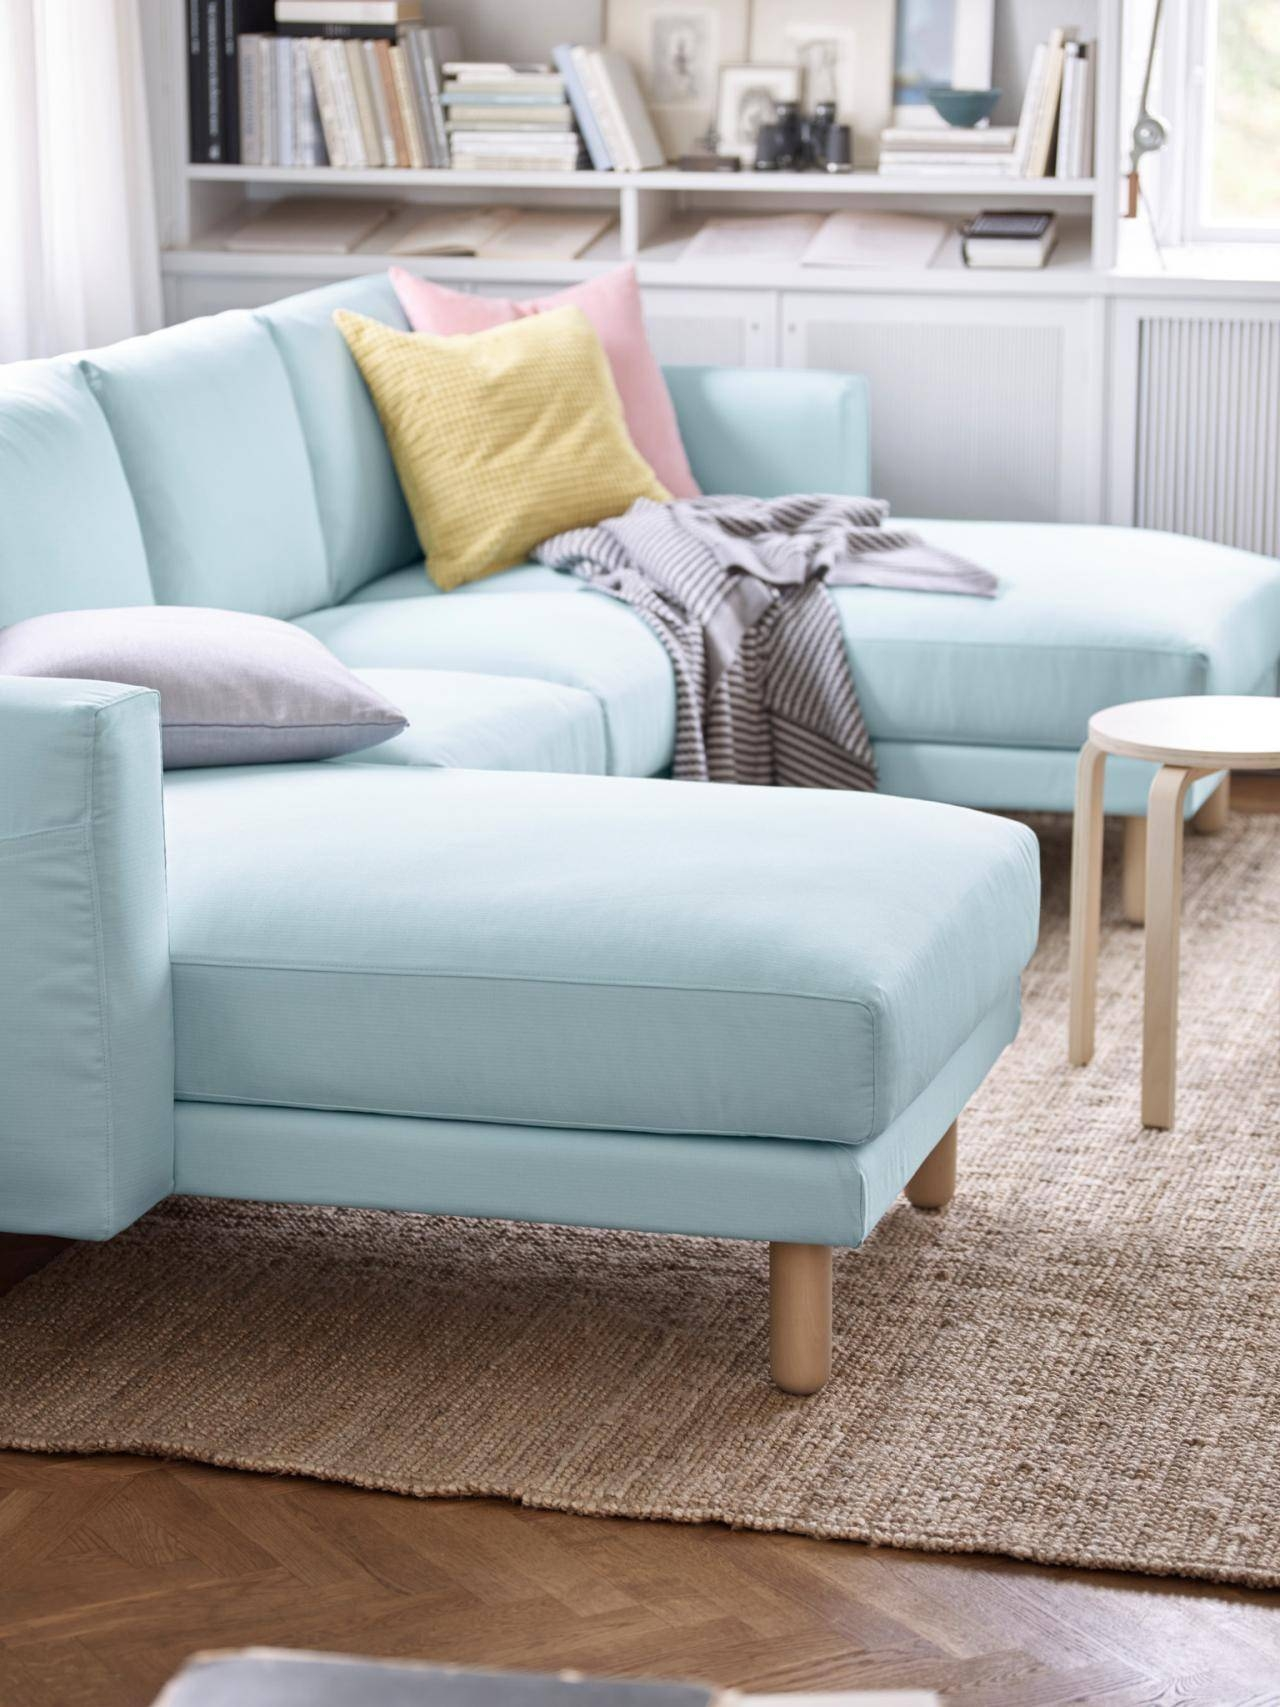 5 Apartment Sized Sofas That Are Lifesavers | Hgtv's Decorating regarding Condo Size Sofas (Image 1 of 15)